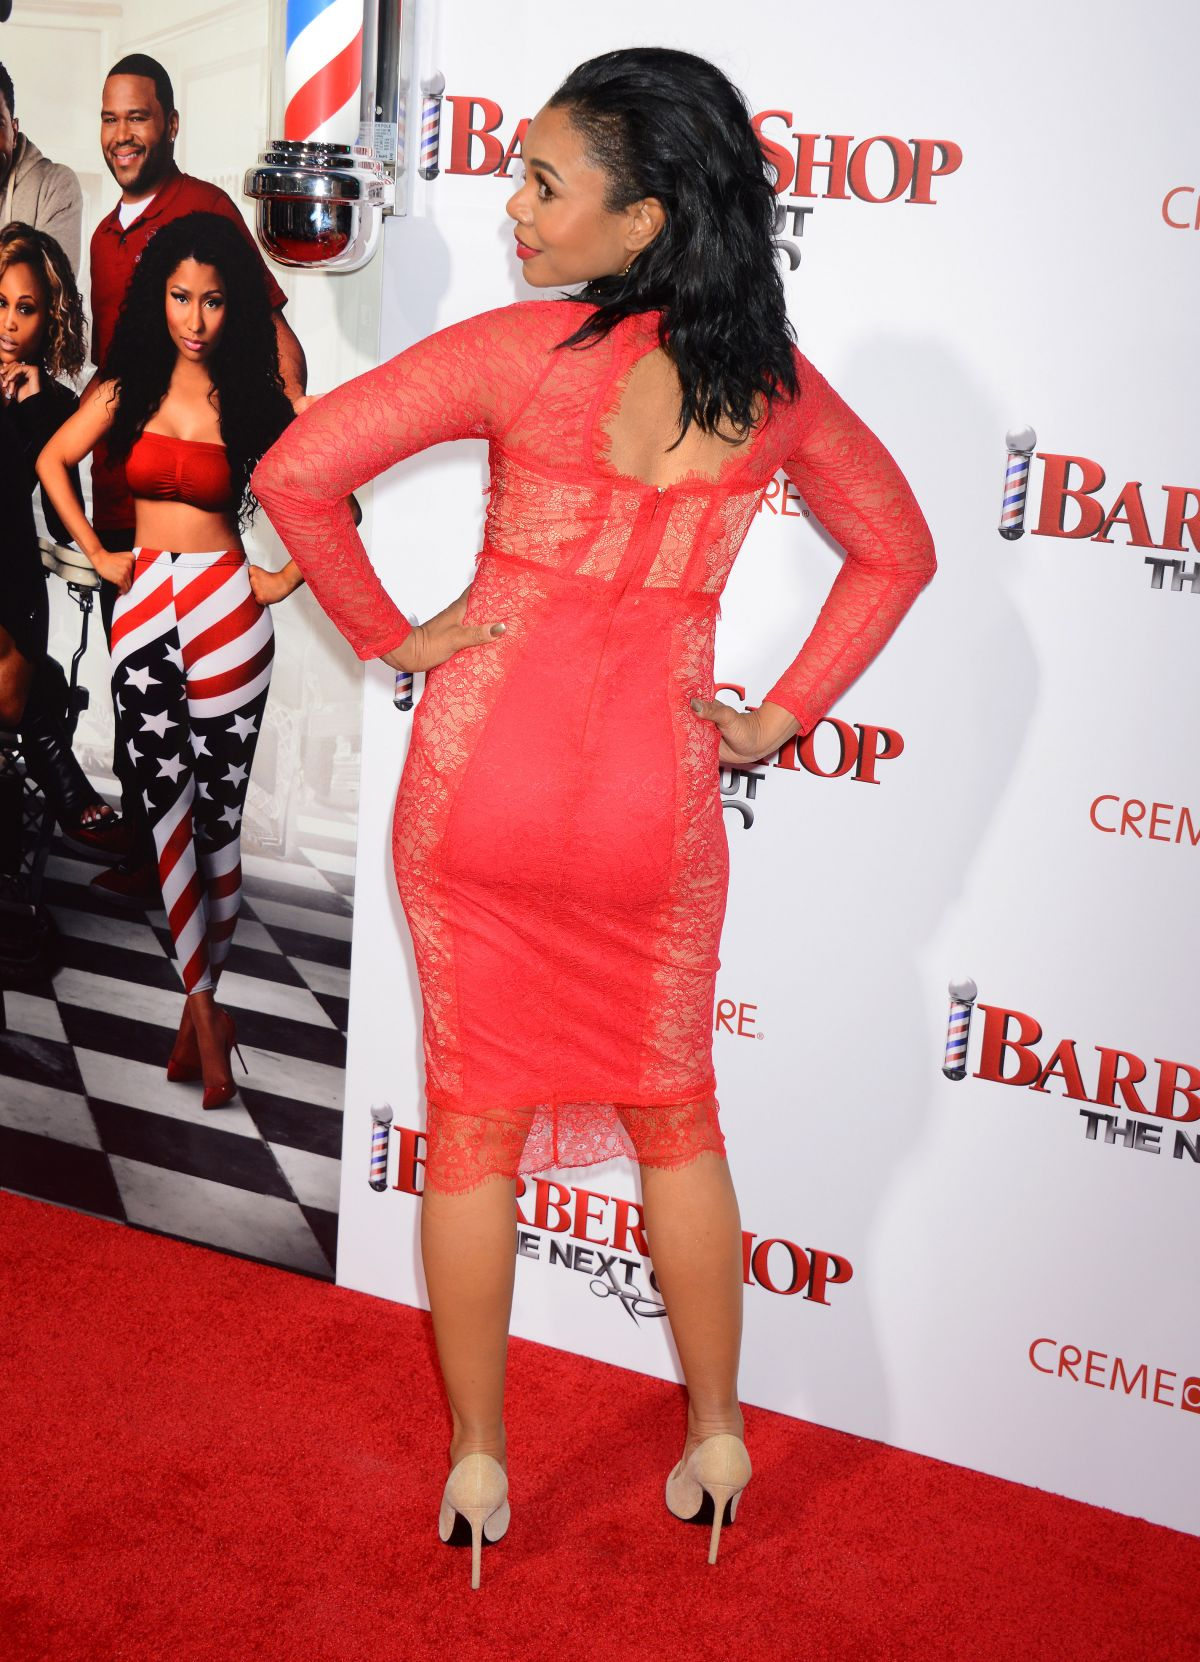 Regina Hall At Premiere Of Barbershop The Next Cut In